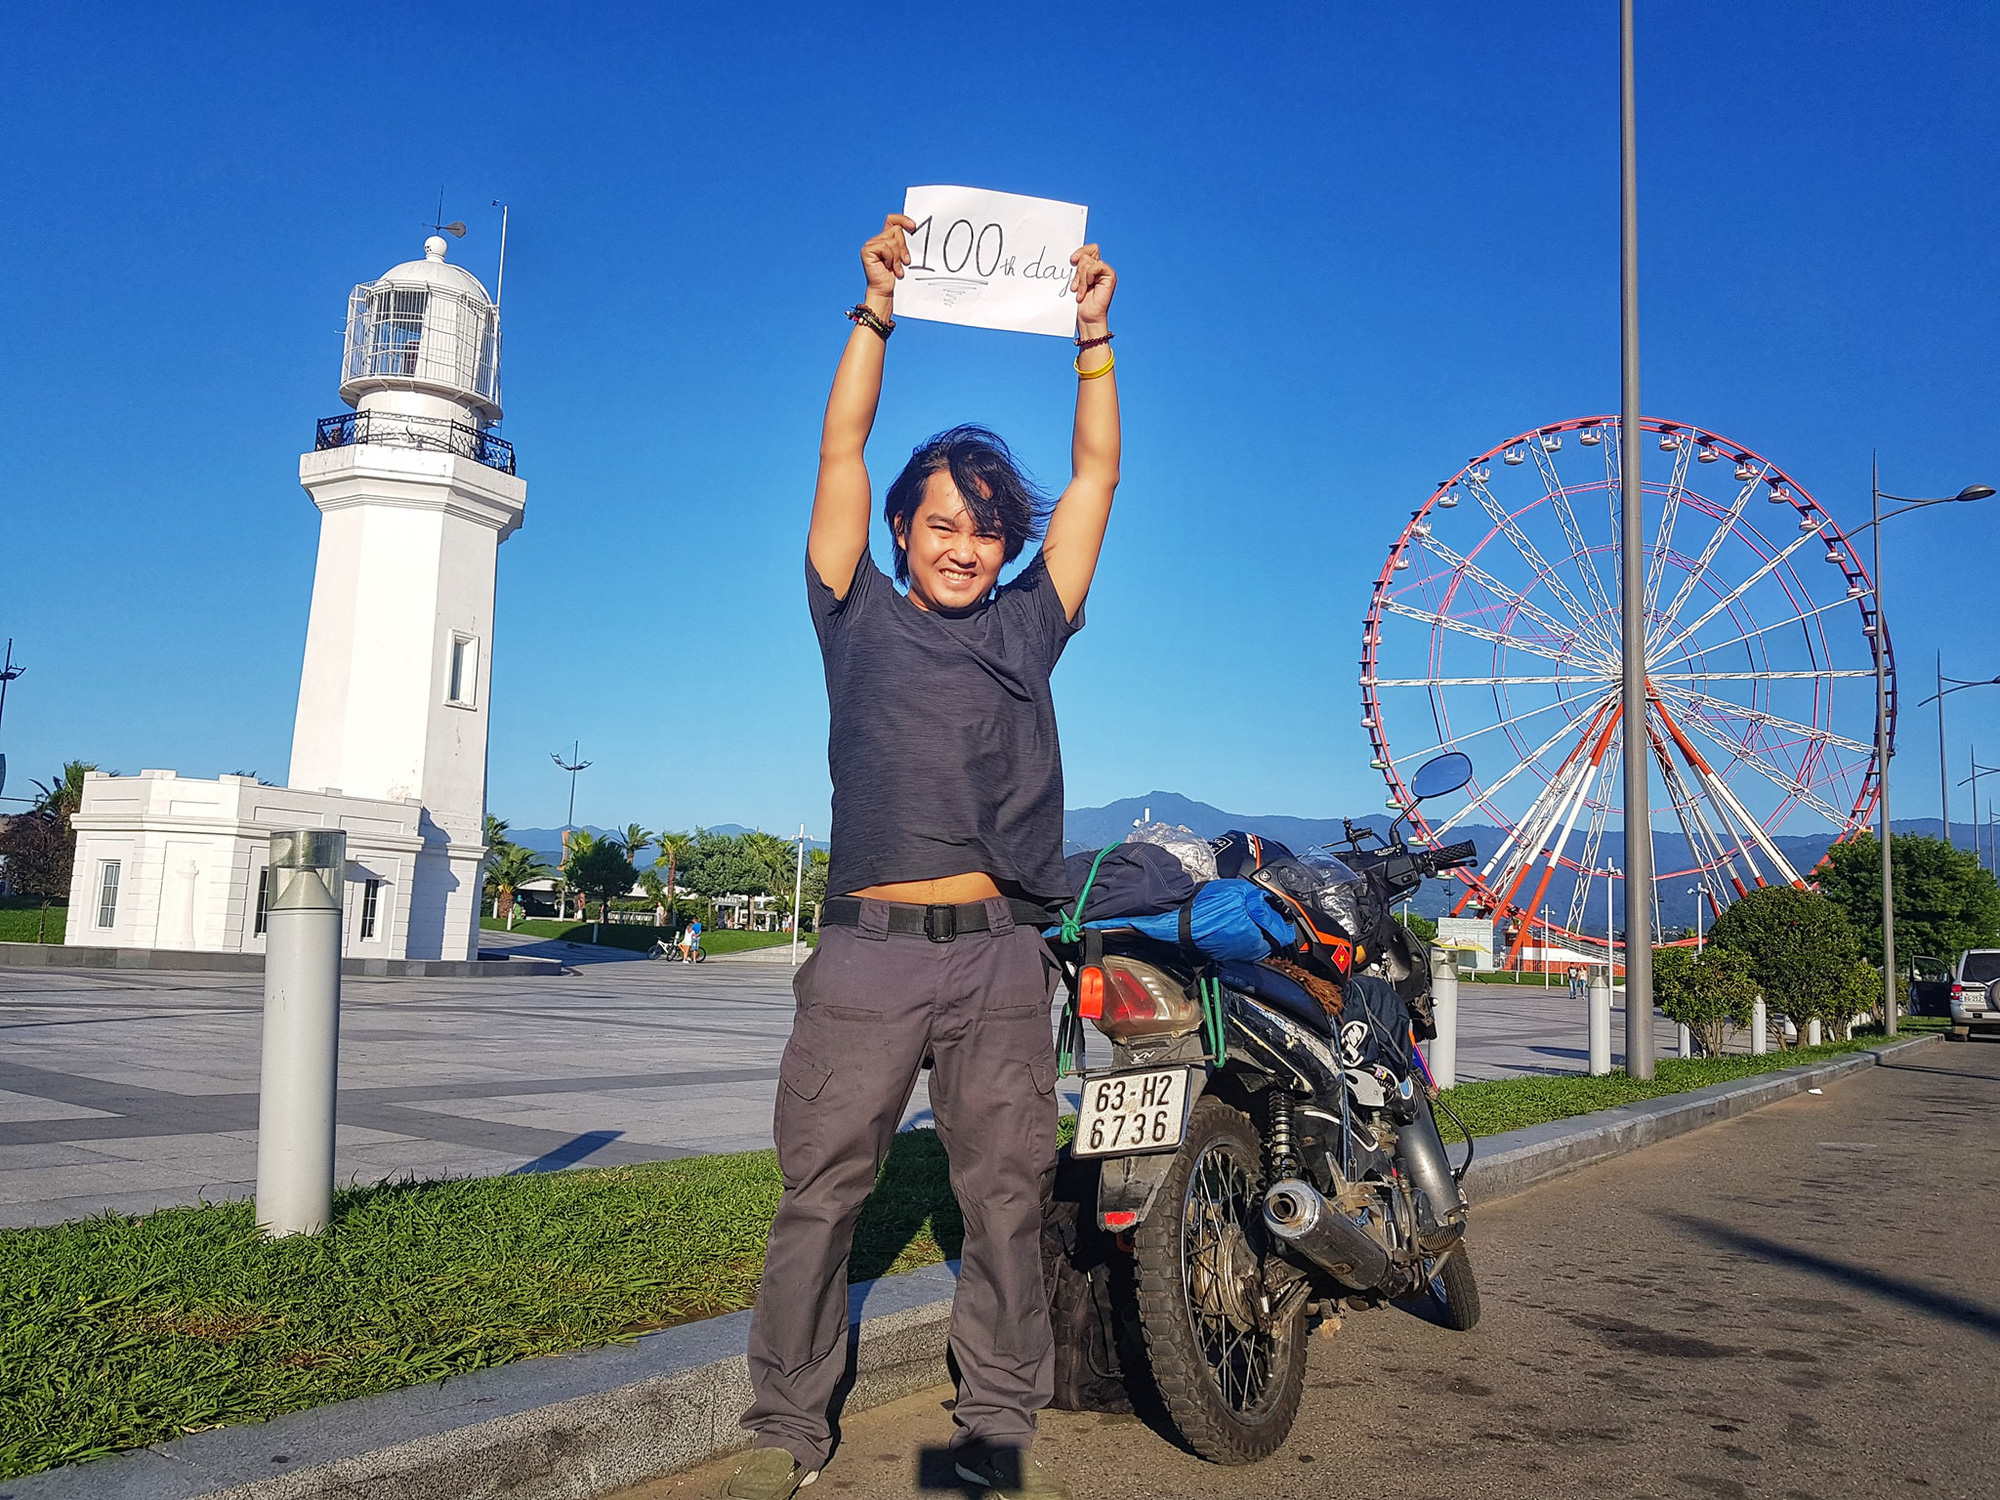 Vietnamese globetrotter Tran Dang Dang Khoa poses for a photo with his motorbike in Batumi, Georgia on the 100th day of his journey around the world in a photo posted to his verified Facebook account.